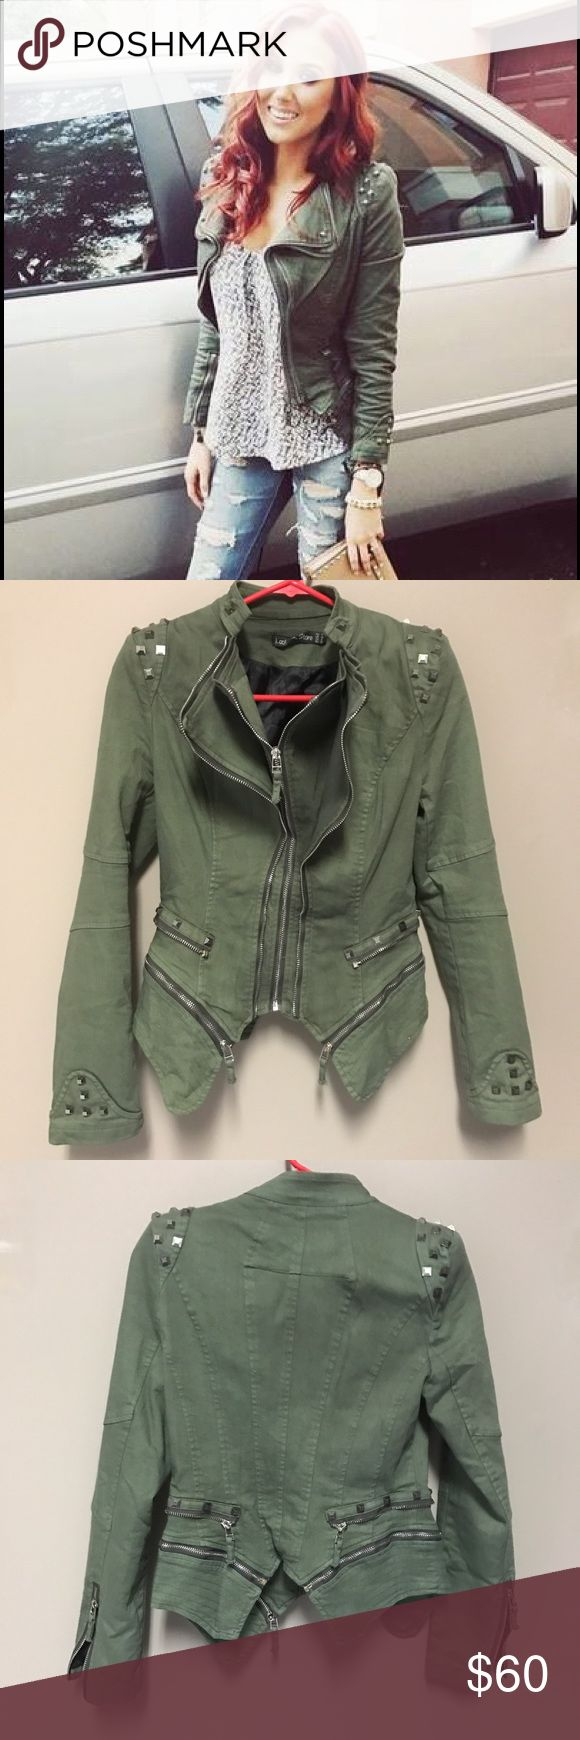 Studded Denim Blazer Jacket - size 6, green Studded Denim Blazer Jacket - size 6, green, never worn, NWOT. As seen on Jaclyn Hill. I bought this in a 6 and an 8. The 6 was too tight on my arms so I kept the 8. Lookbook Store Jackets & Coats Blazers